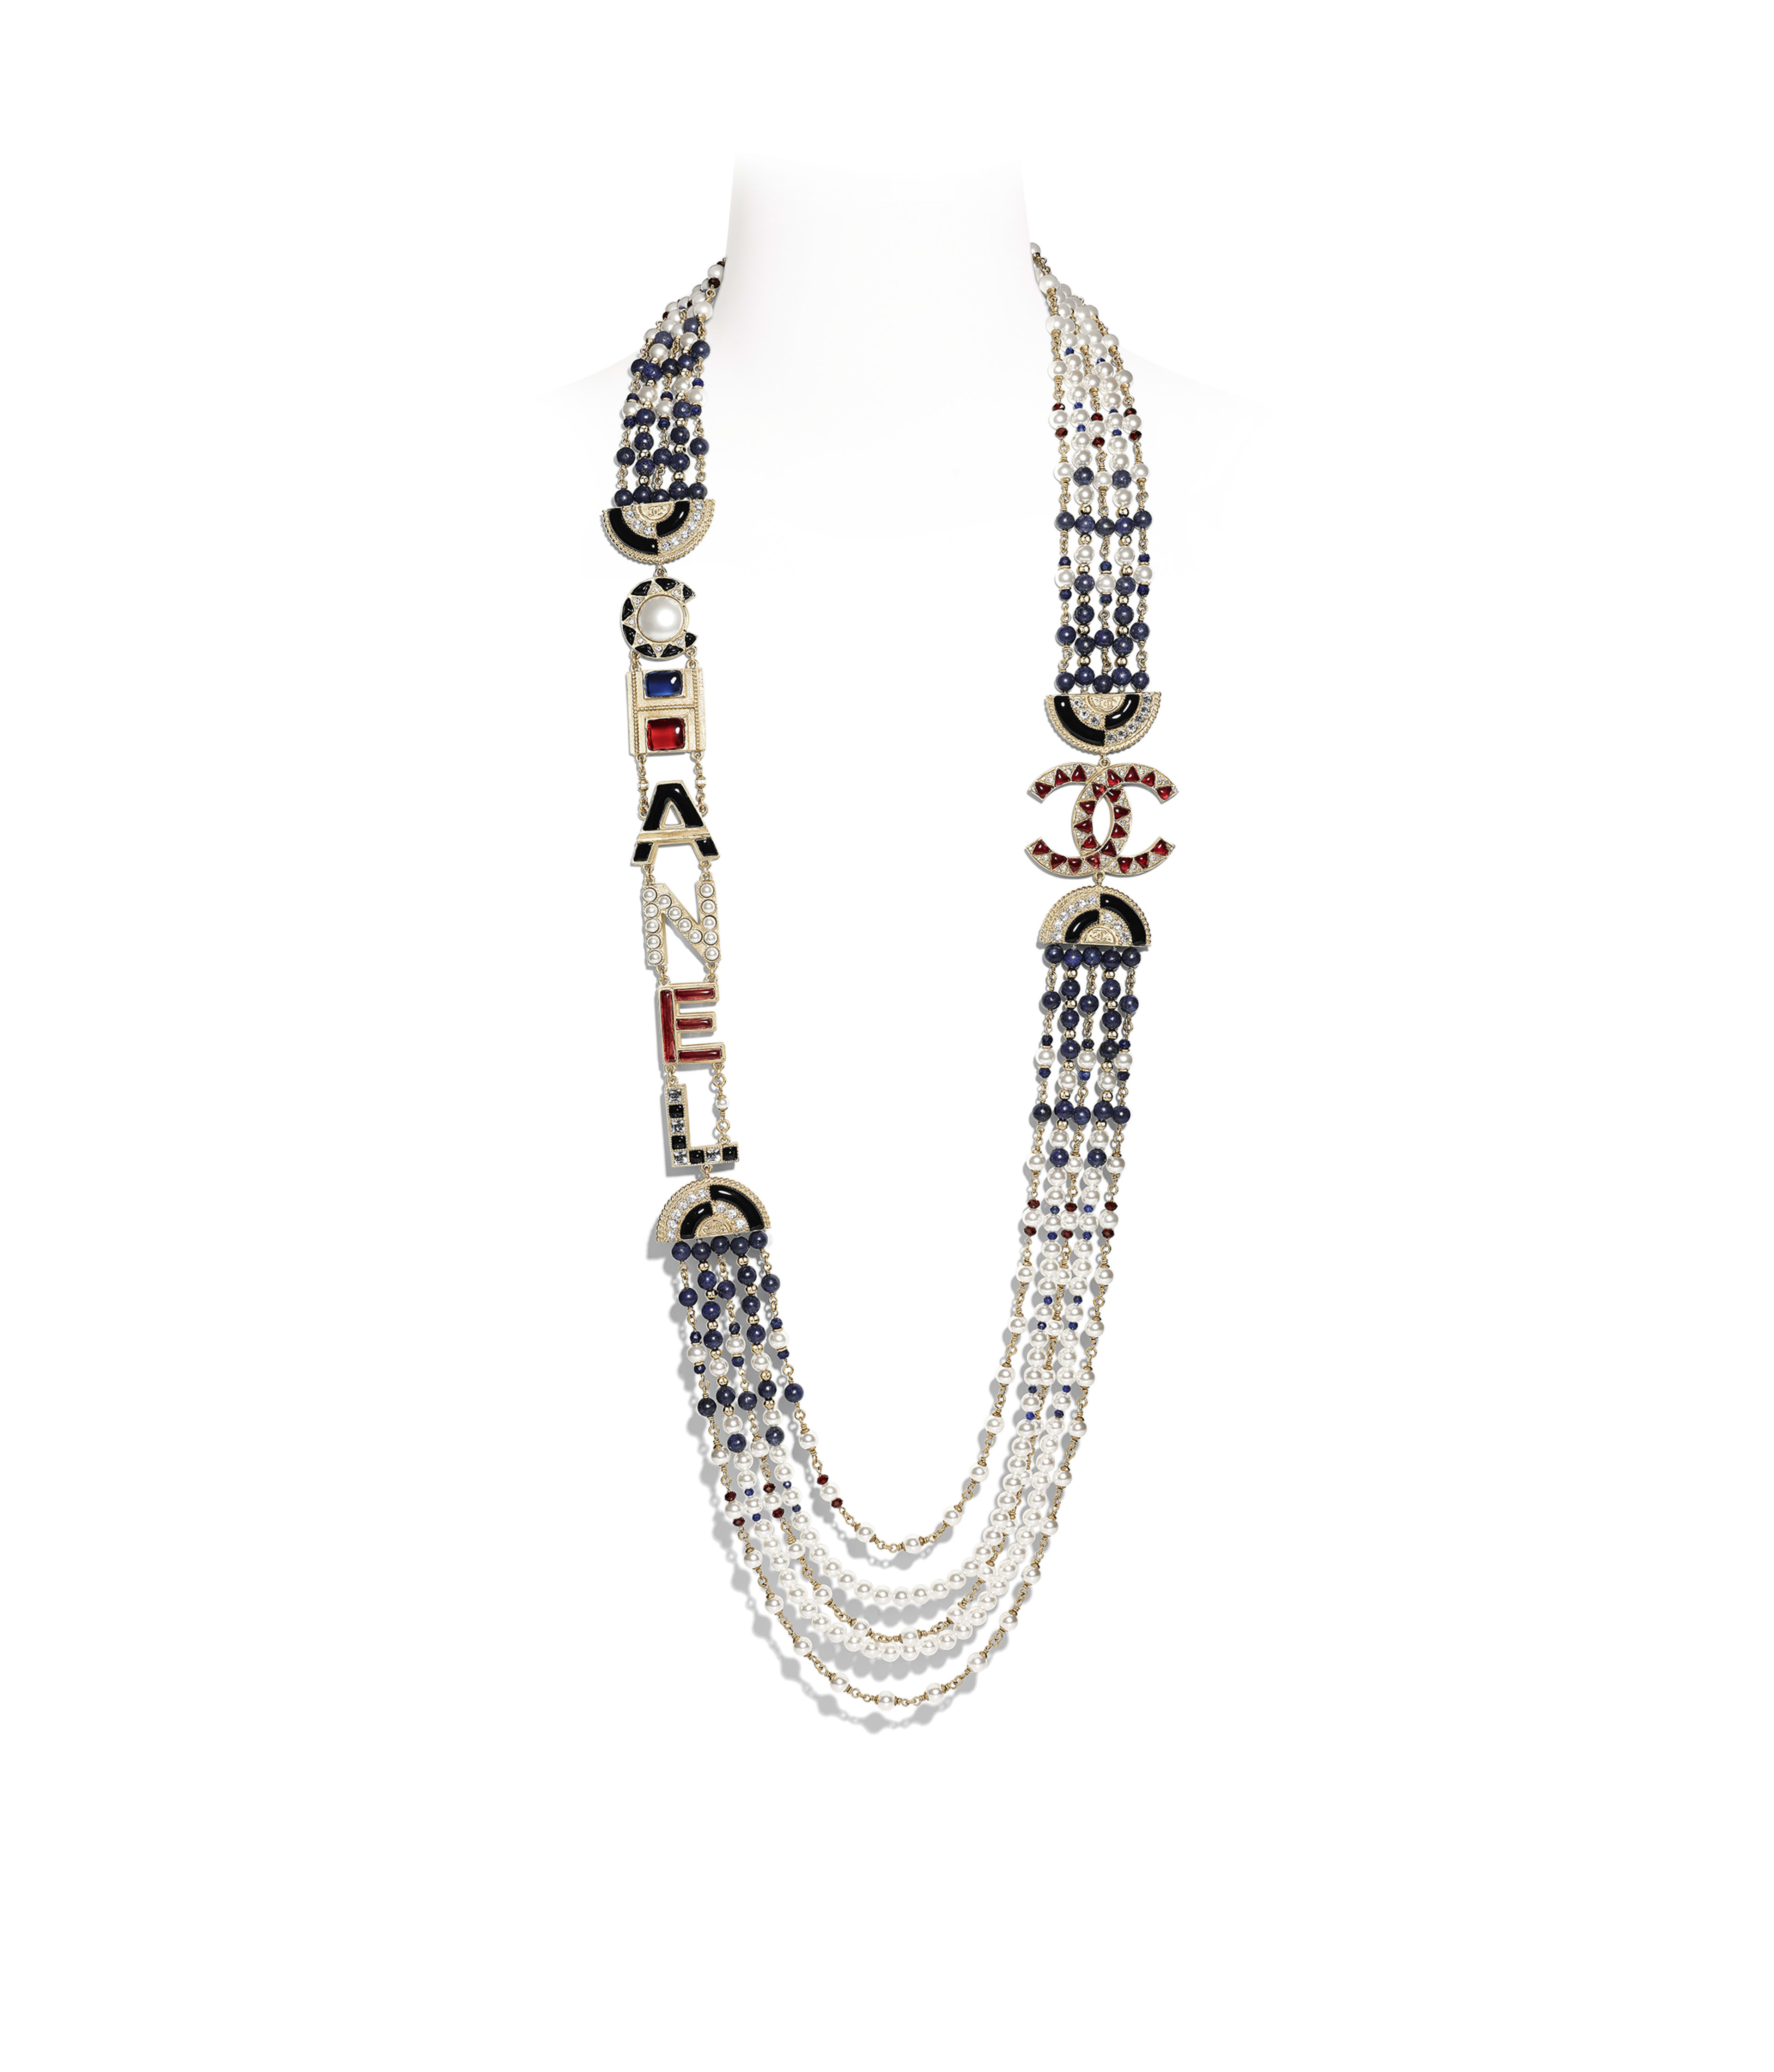 2 Piece Glass Bead And Dark Metal Costume Jewelly With Traditional Methods Necklaces & Pendants Jewelry & Watches